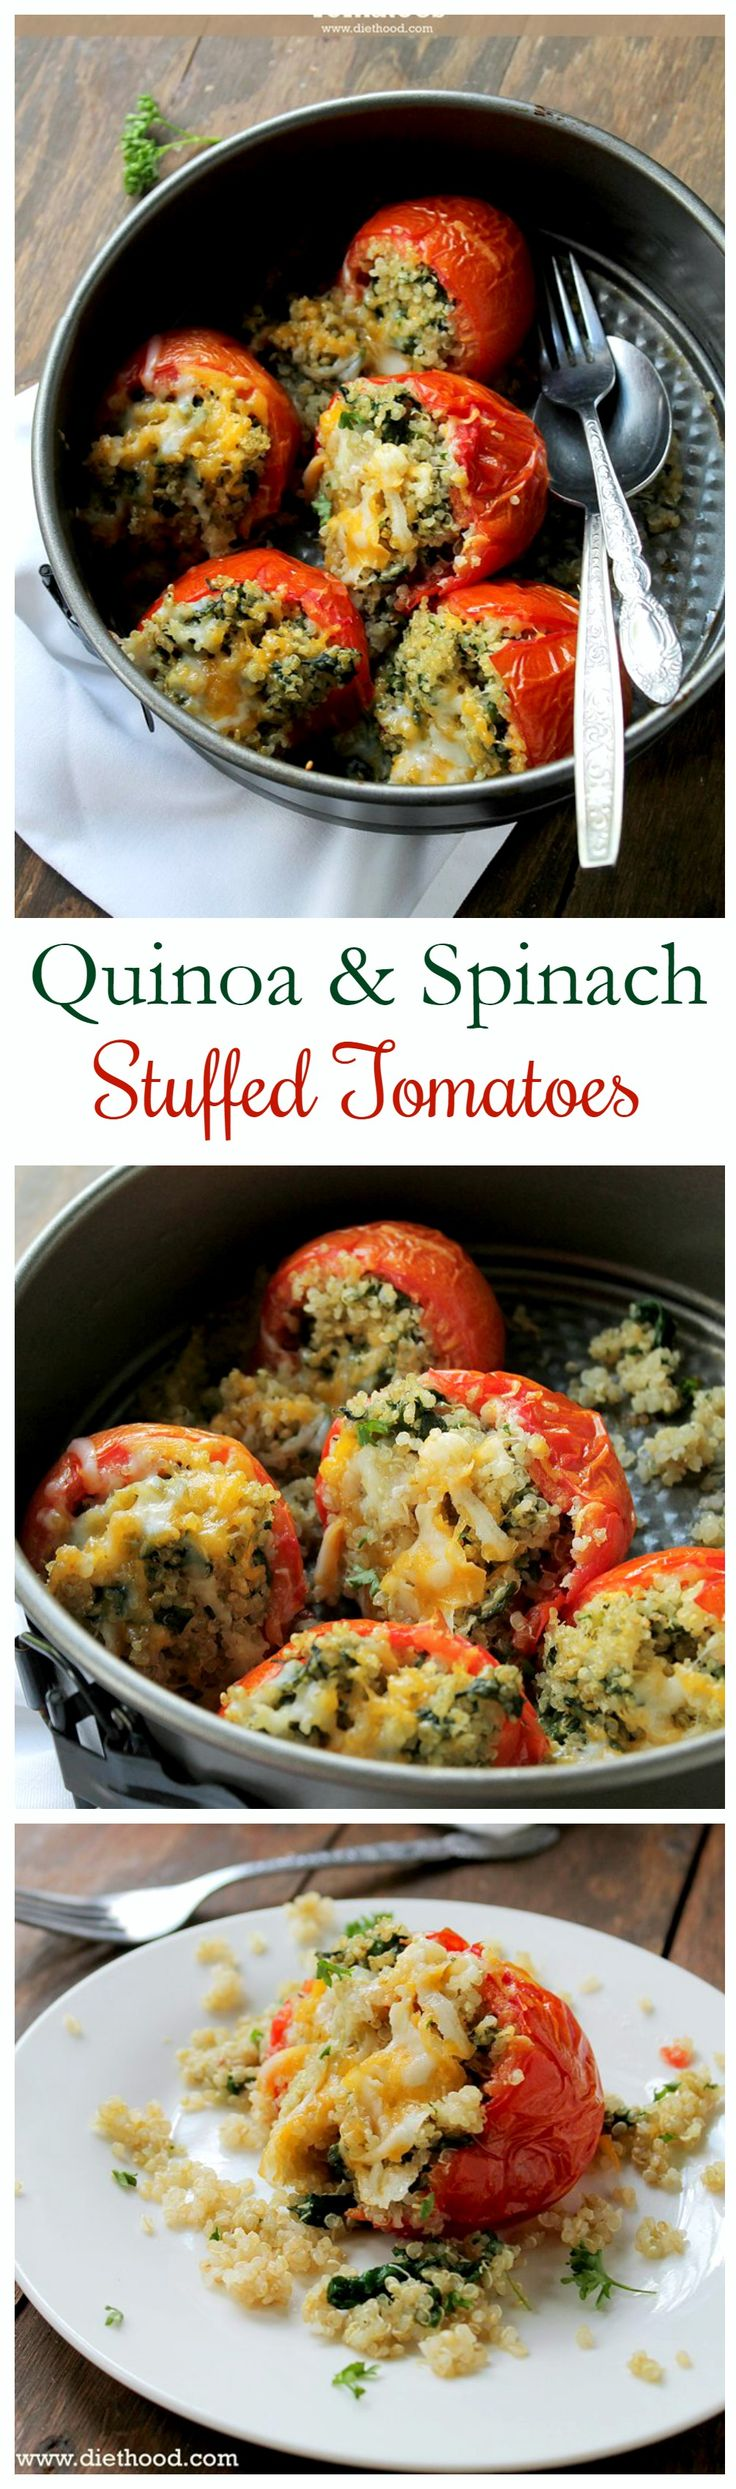 Delicious Baked Tomatoes Stuffed With A Cheesy Quinoa And Spinach Mixture